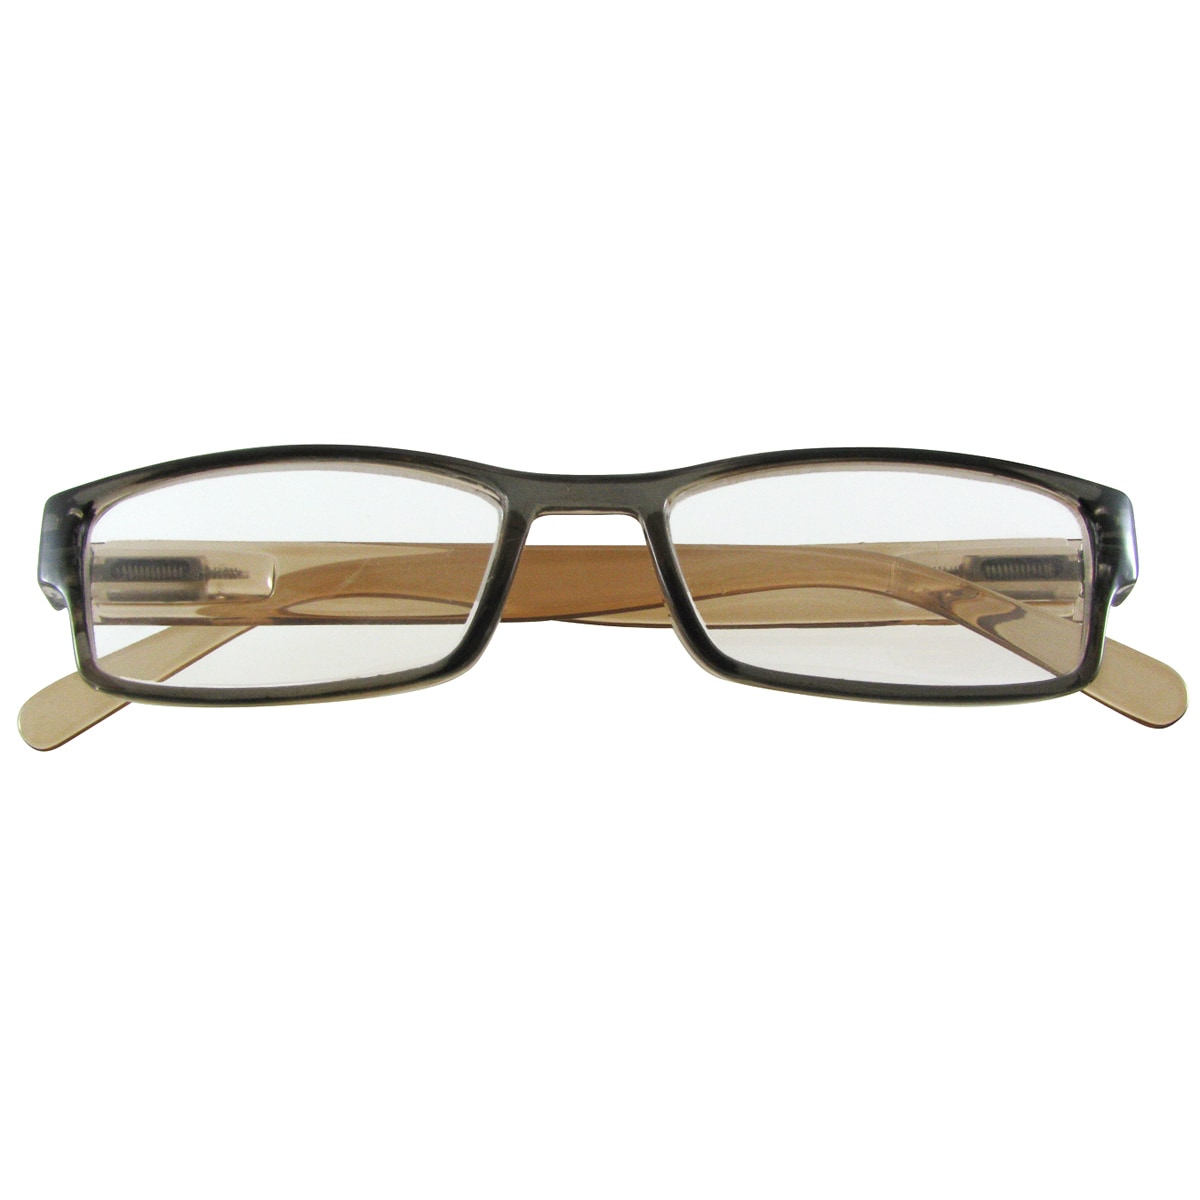 E-specs by Evolutioneyes Brown Plastic Computer Reading Glasses